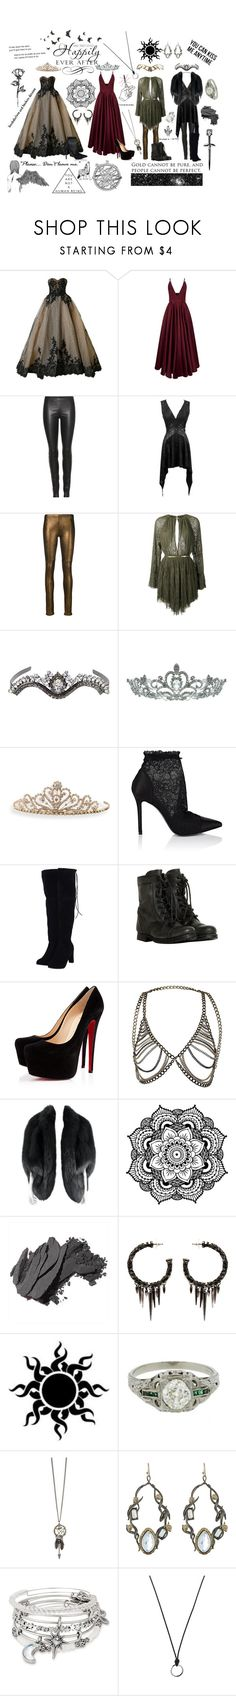 """""""The Darkness in the Light"""" by tymartz1424 ❤ liked on Polyvore featuring Mikael D, La Mania, The Row, Mes Demoiselles..., Jay Ahr, Emanuele Bicocchi, Kate Marie, BillyTheTree, Stella Luna and AllSaints"""